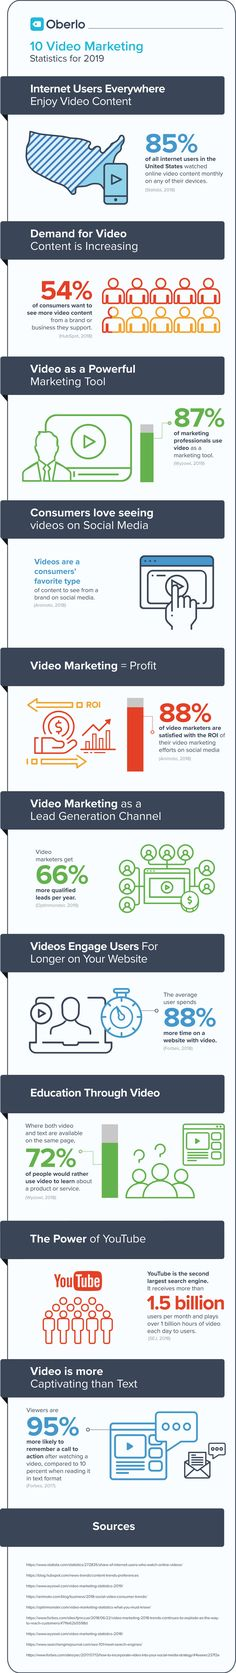 The stats you need to know about video marketing in this infographic. Discover why video marketing is a very effective tool for your business in